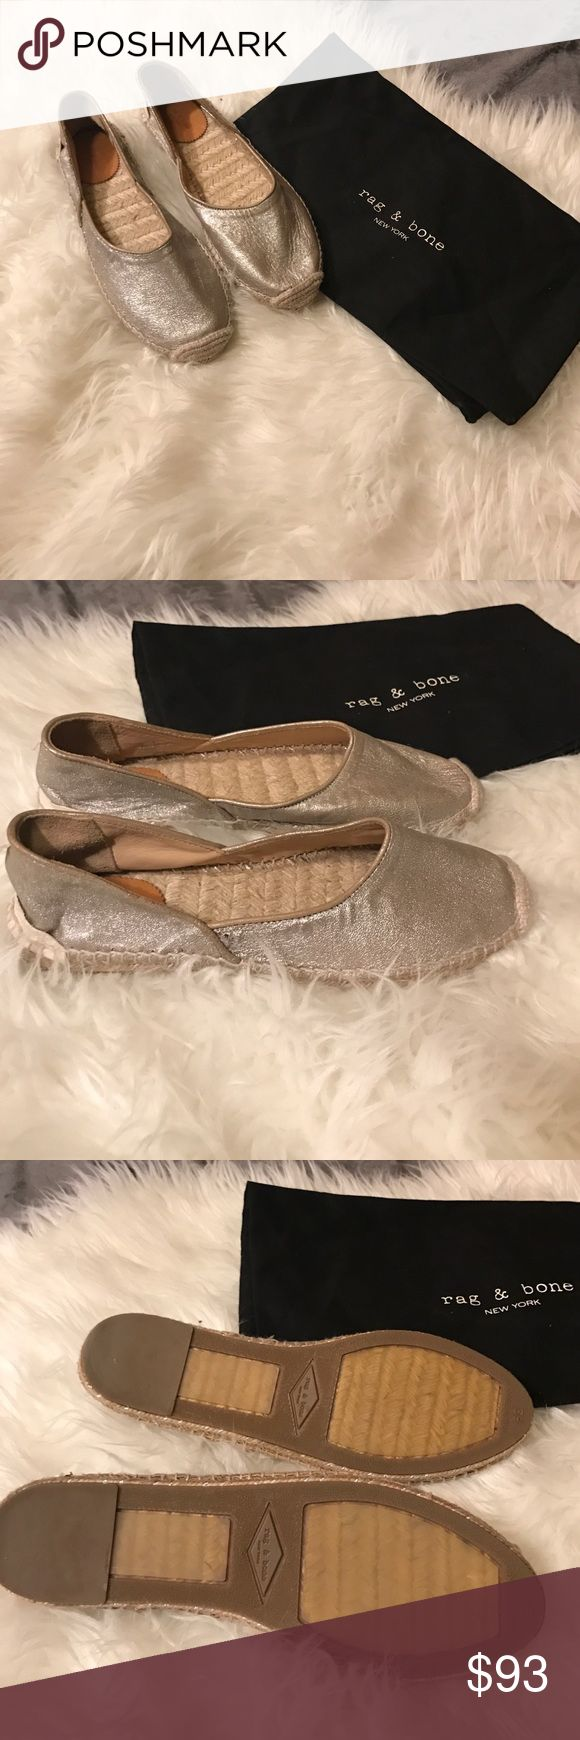 Rag and Bone Giorgie espadrilles flats Brand new silver espadrilles. Excellent for the summer. Size 39 and unfortunately don't fit my wide feet 😞. Very soft lamb leather. Comes with dust bag. rag & bone Shoes Espadrilles